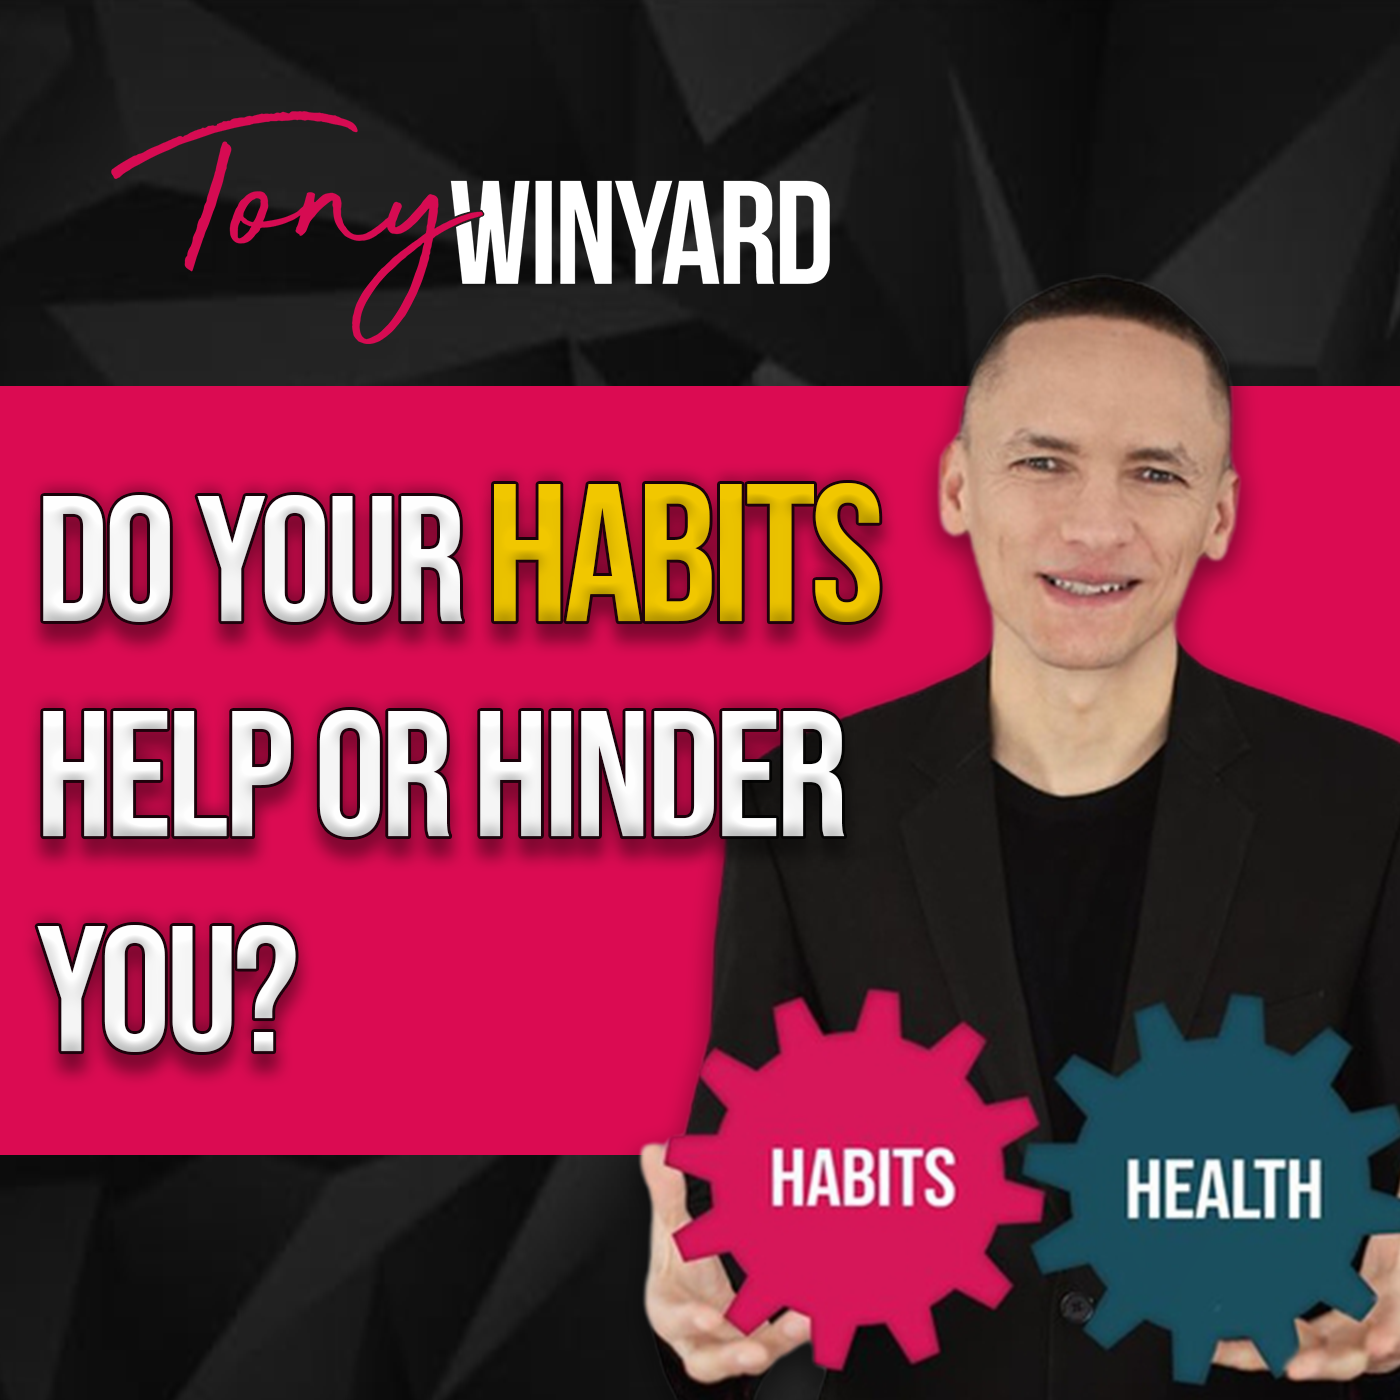 Do your habits help or hinder you